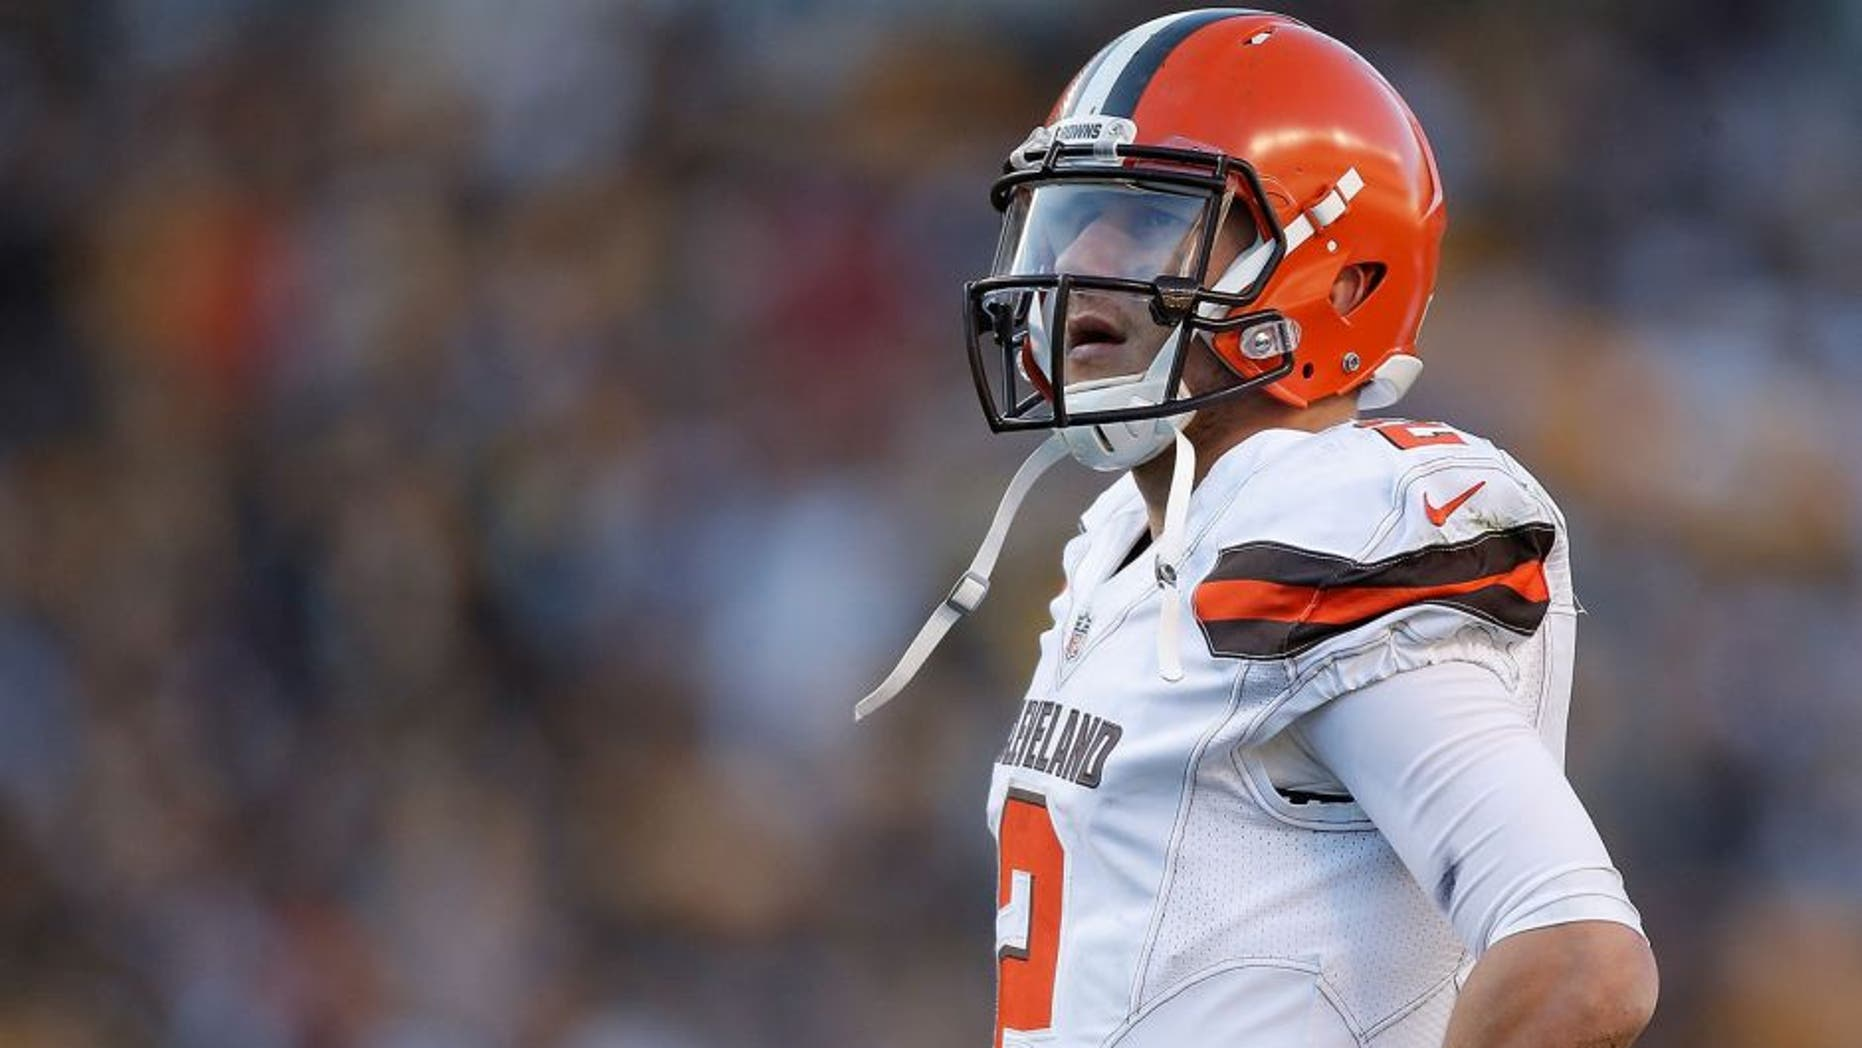 PITTSBURGH, PA - NOVEMBER 15: Johnny Manziel #2 of the Cleveland Browns during the 2nd half of the game against the Pittsburgh Steelers at Heinz Field on November 15, 2015 in Pittsburgh, Pennsylvania. (Photo by Gregory Shamus/Getty Images)